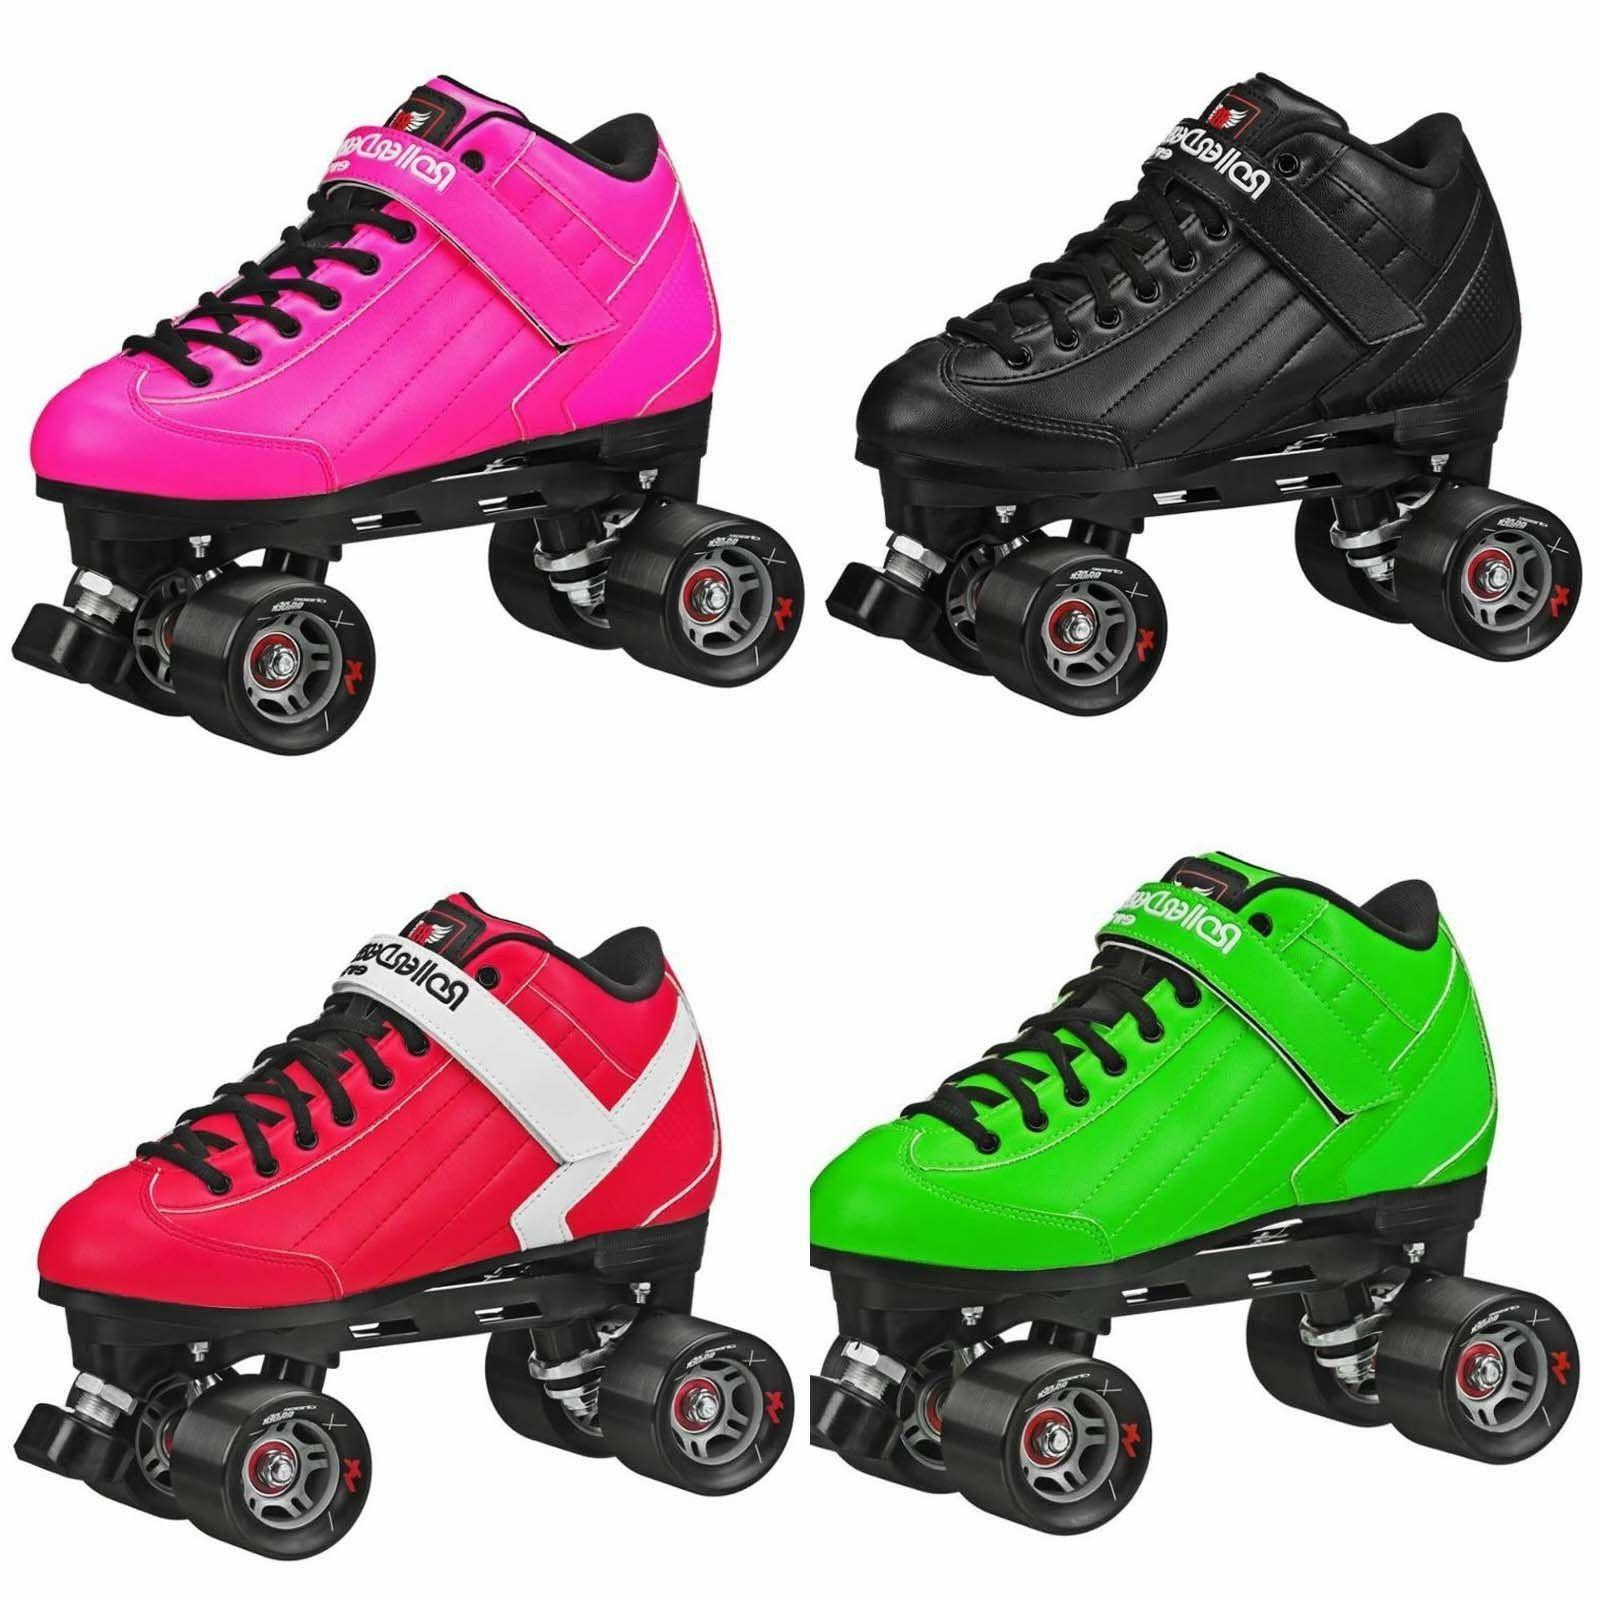 new adult elite stomp 5 speed skates